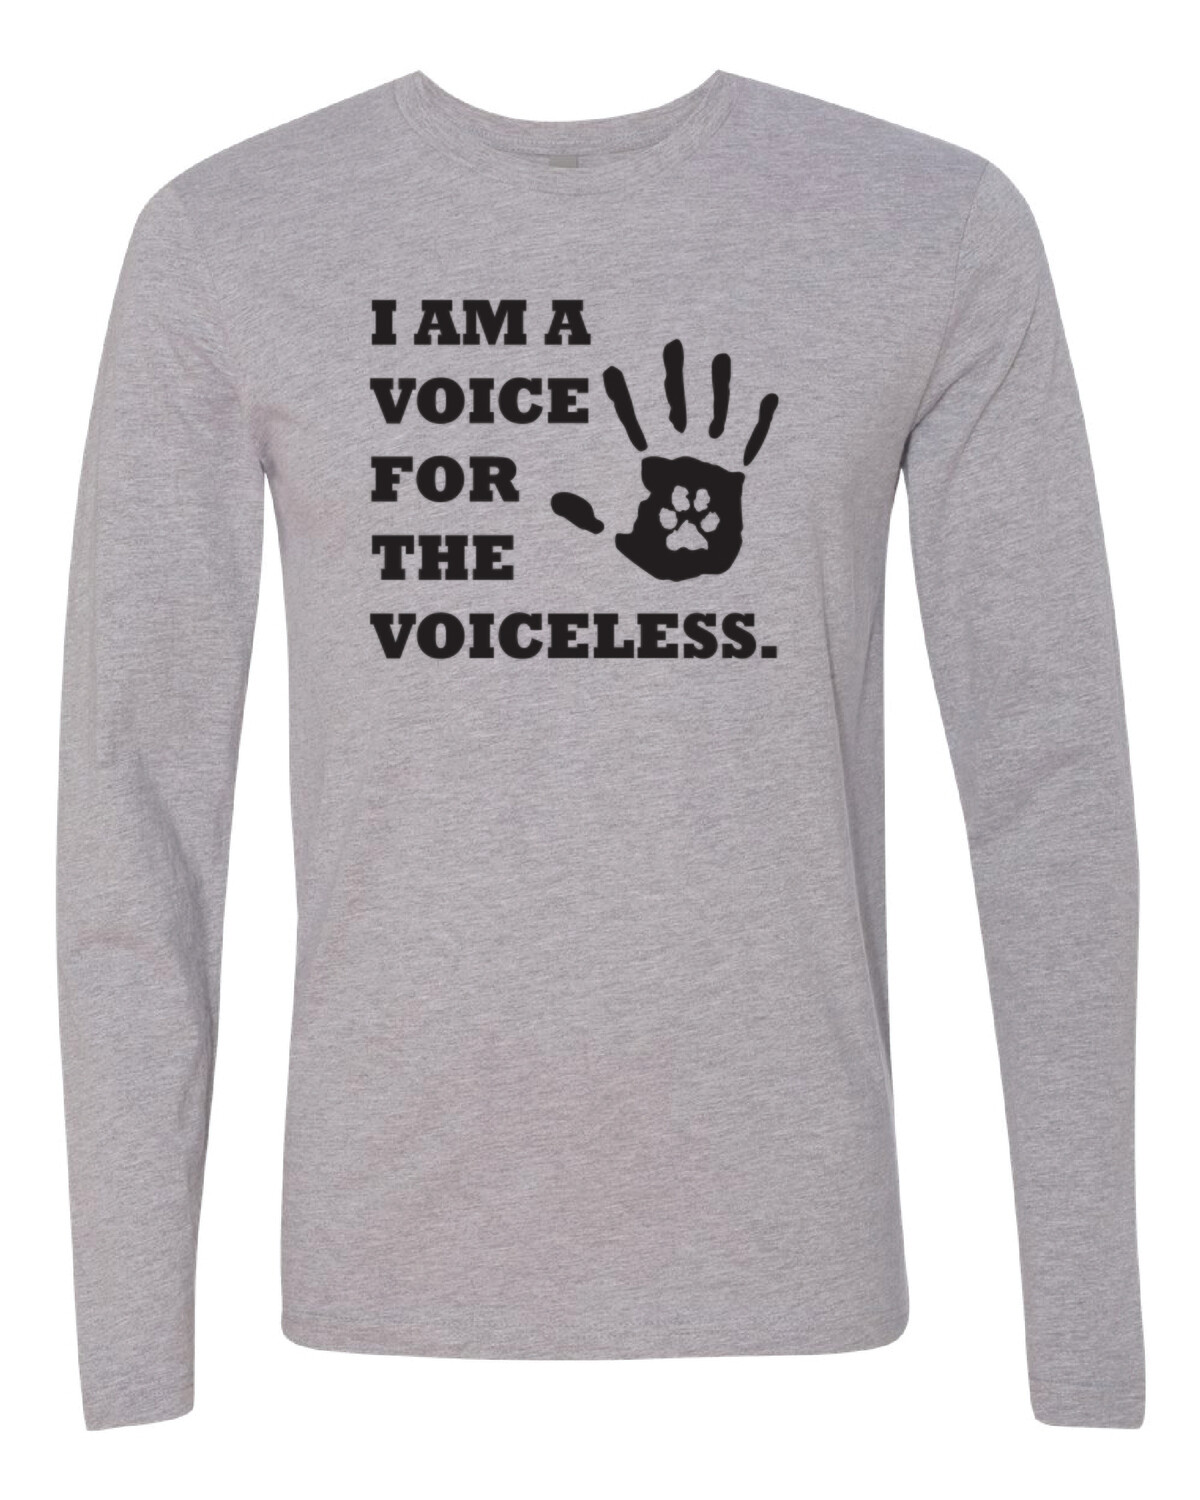 I am a voice for the voiceless long sleeve